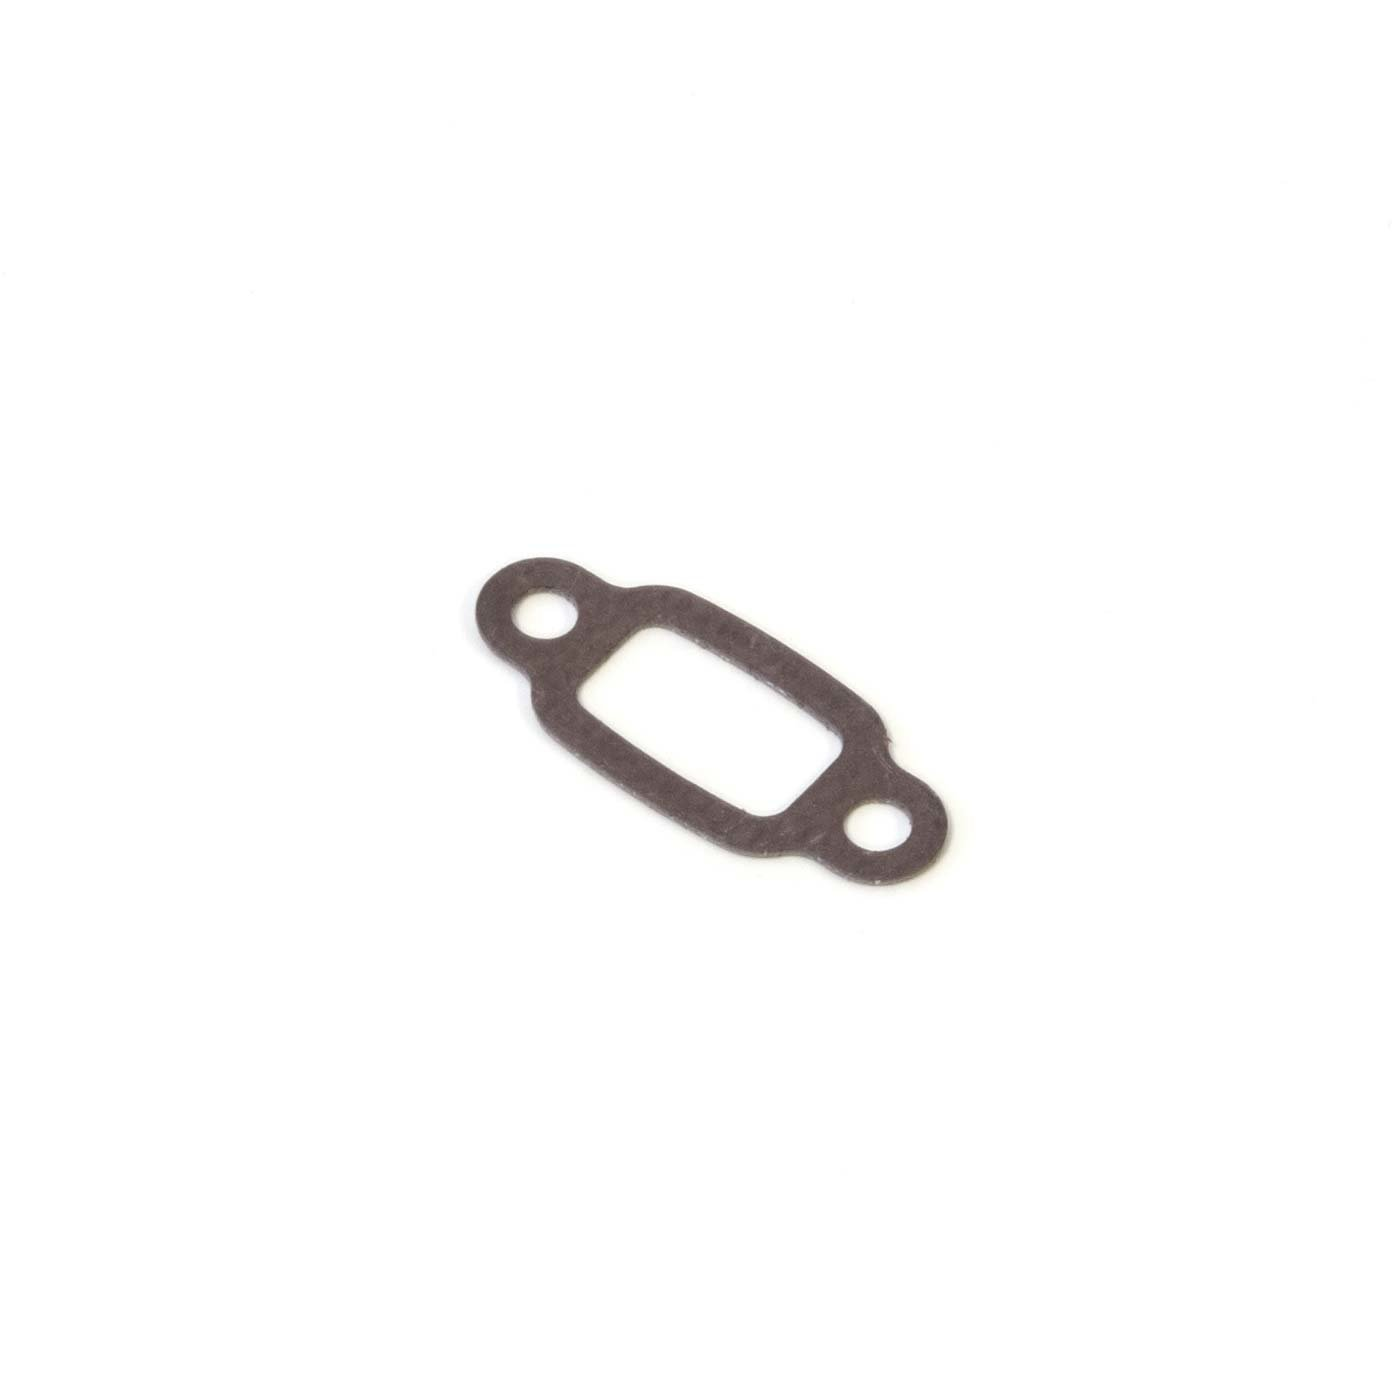 Exhaust gasket for ZG20/ZG22/ZG23/ZG231 ZG26/G2D96-D/G230RC/G260